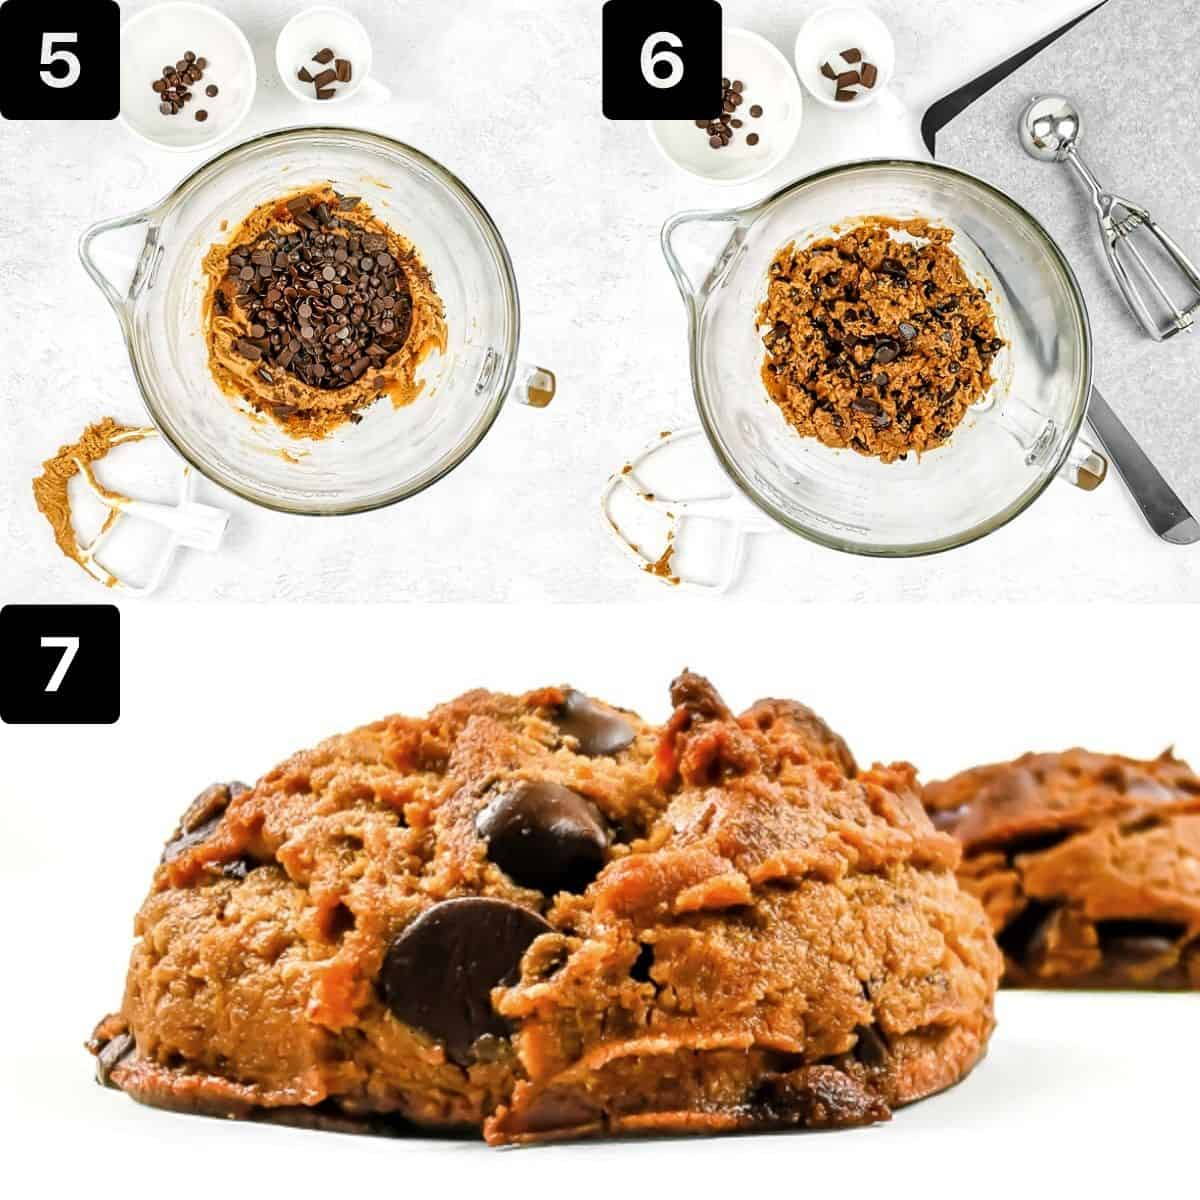 step by step to make the peanut butter cookies